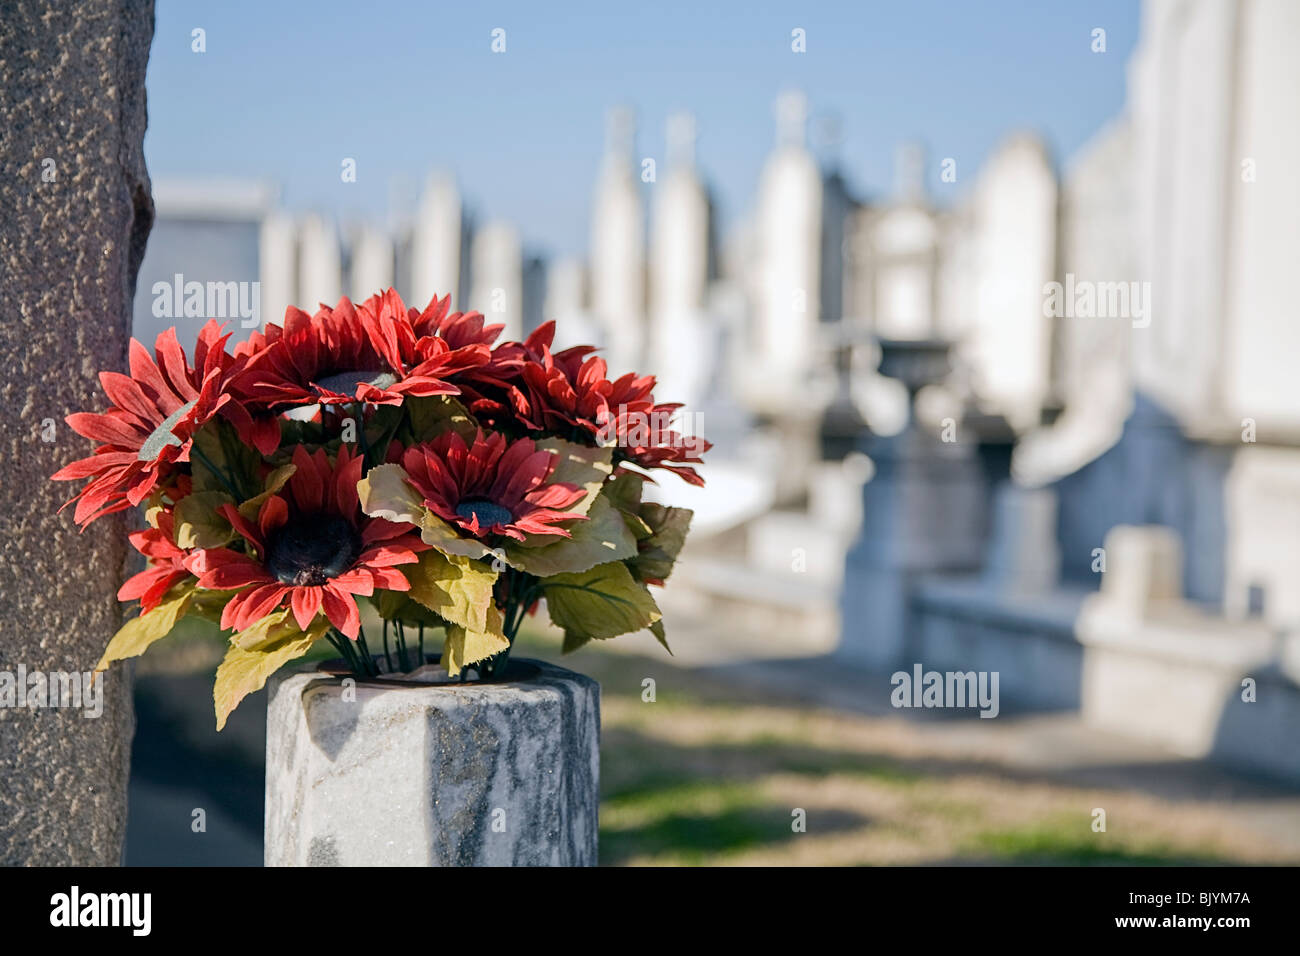 Flowers and tombstones stock photos flowers and tombstones stock red silk flowers next to a headstone in a cemetery in new orleans background a mightylinksfo